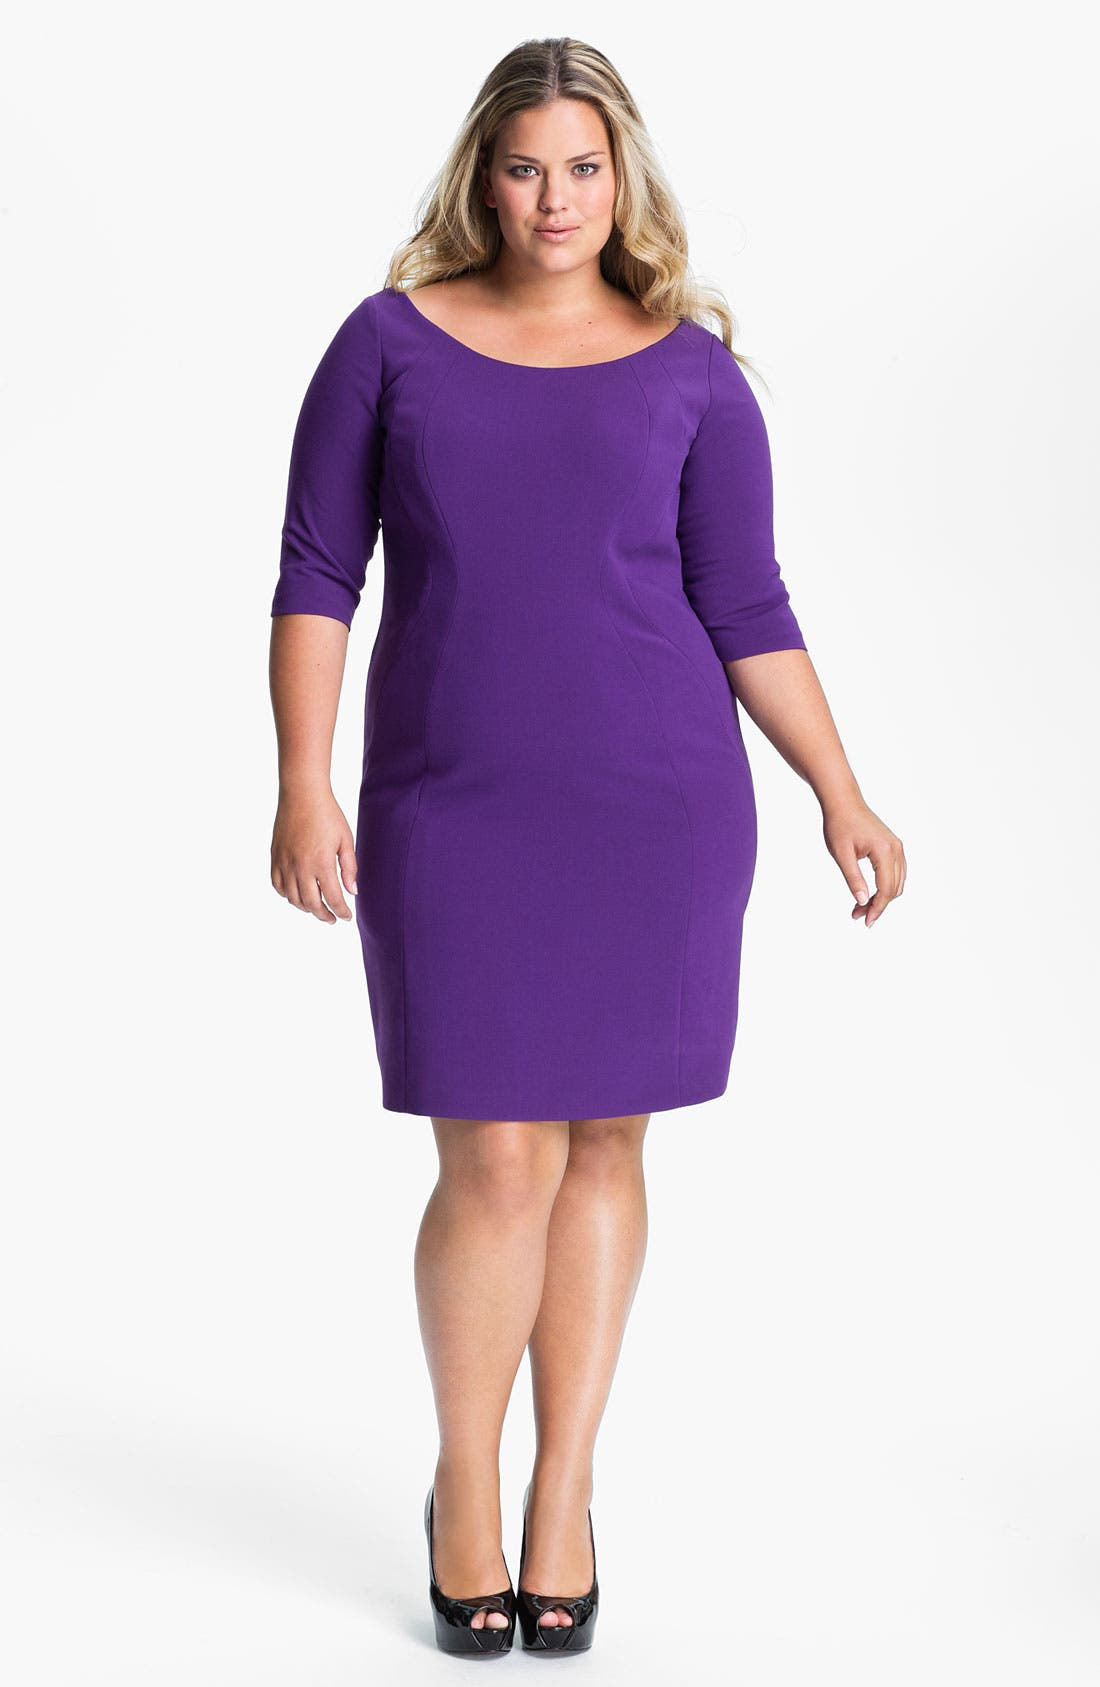 Main Image - Tahari Woman 'Pepita' Dress (Plus)